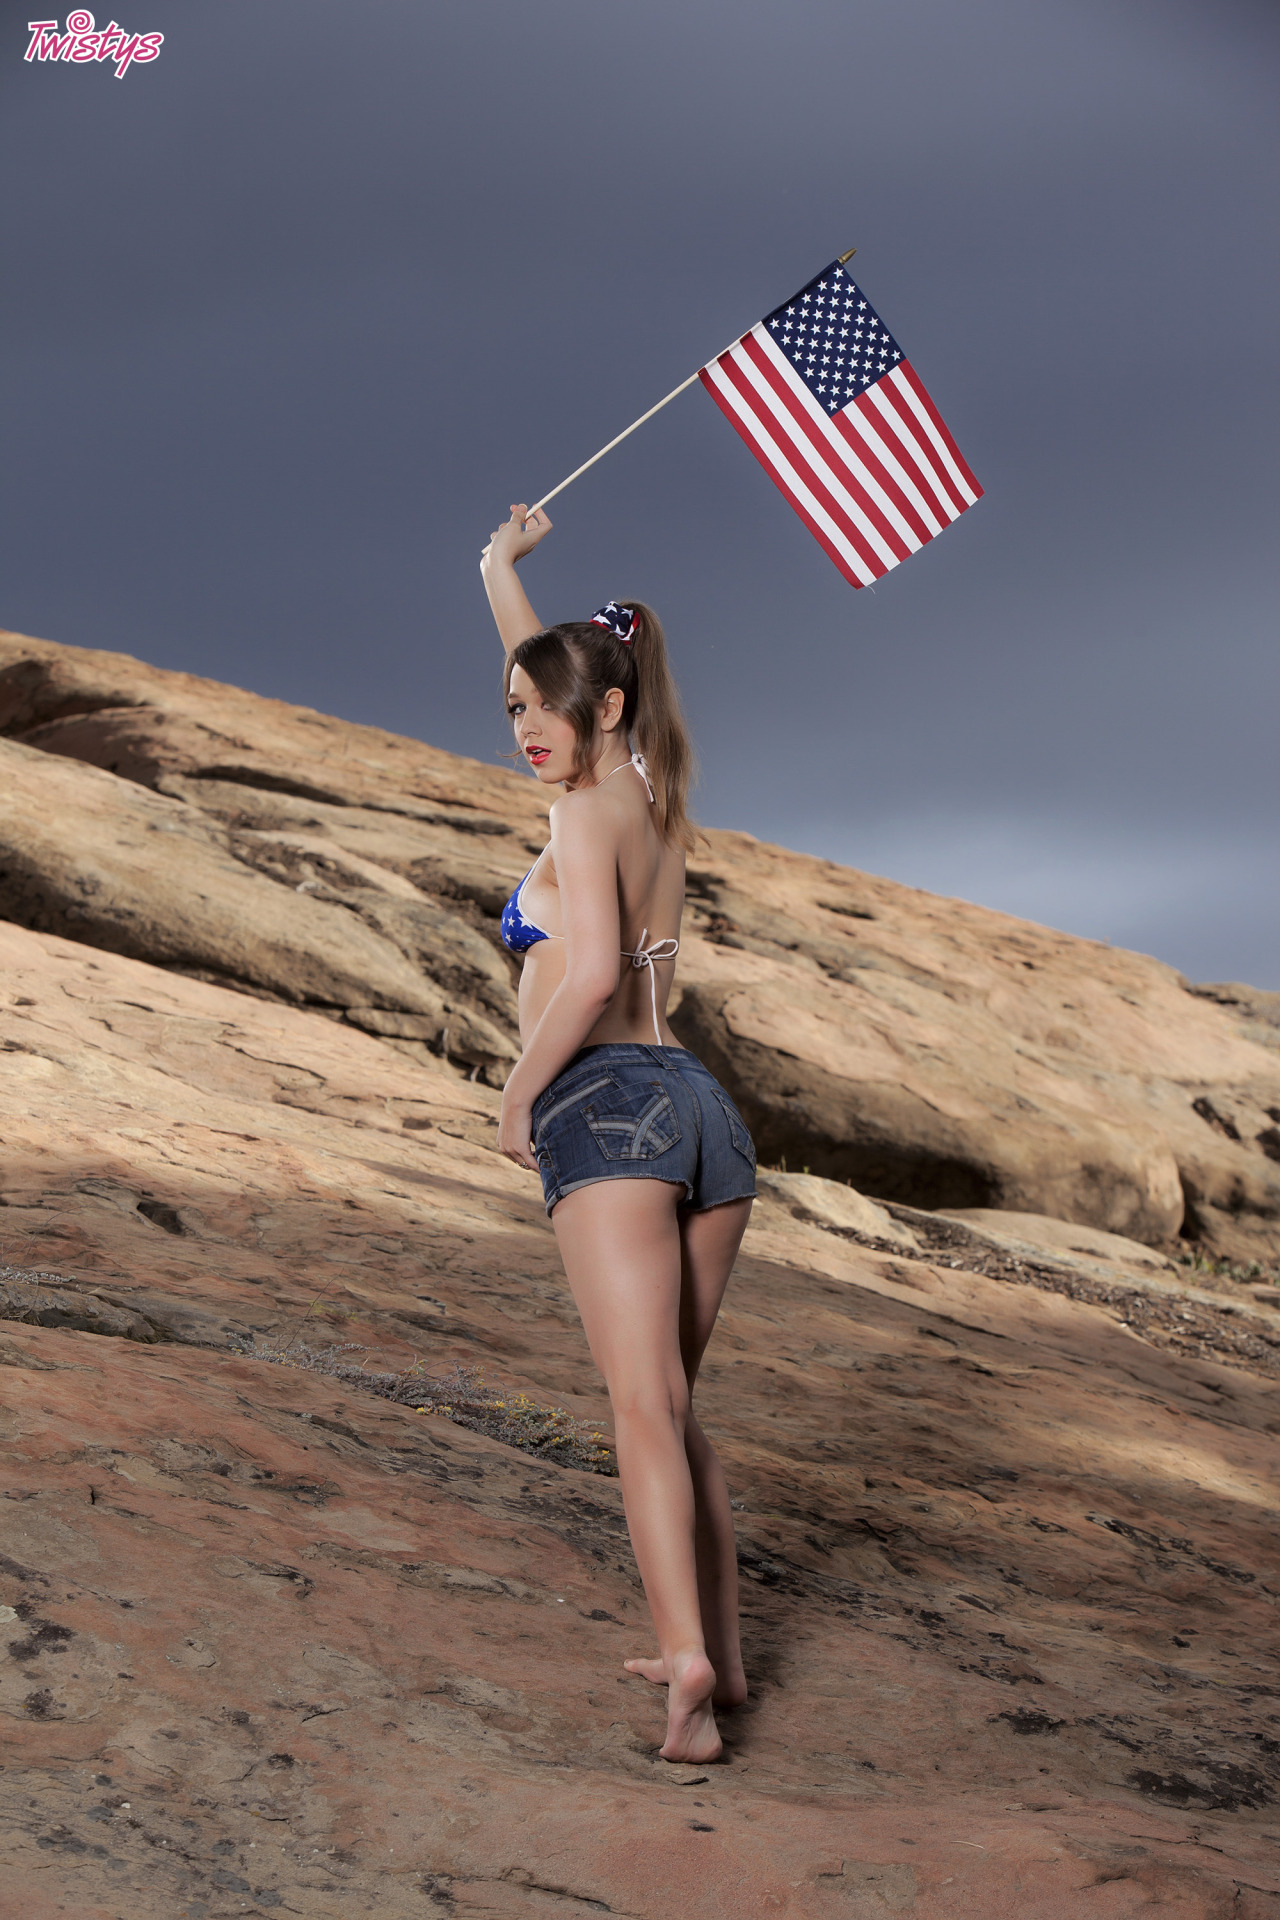 Alaina Fox, Wishing You A Very Happy 4th Of July 1